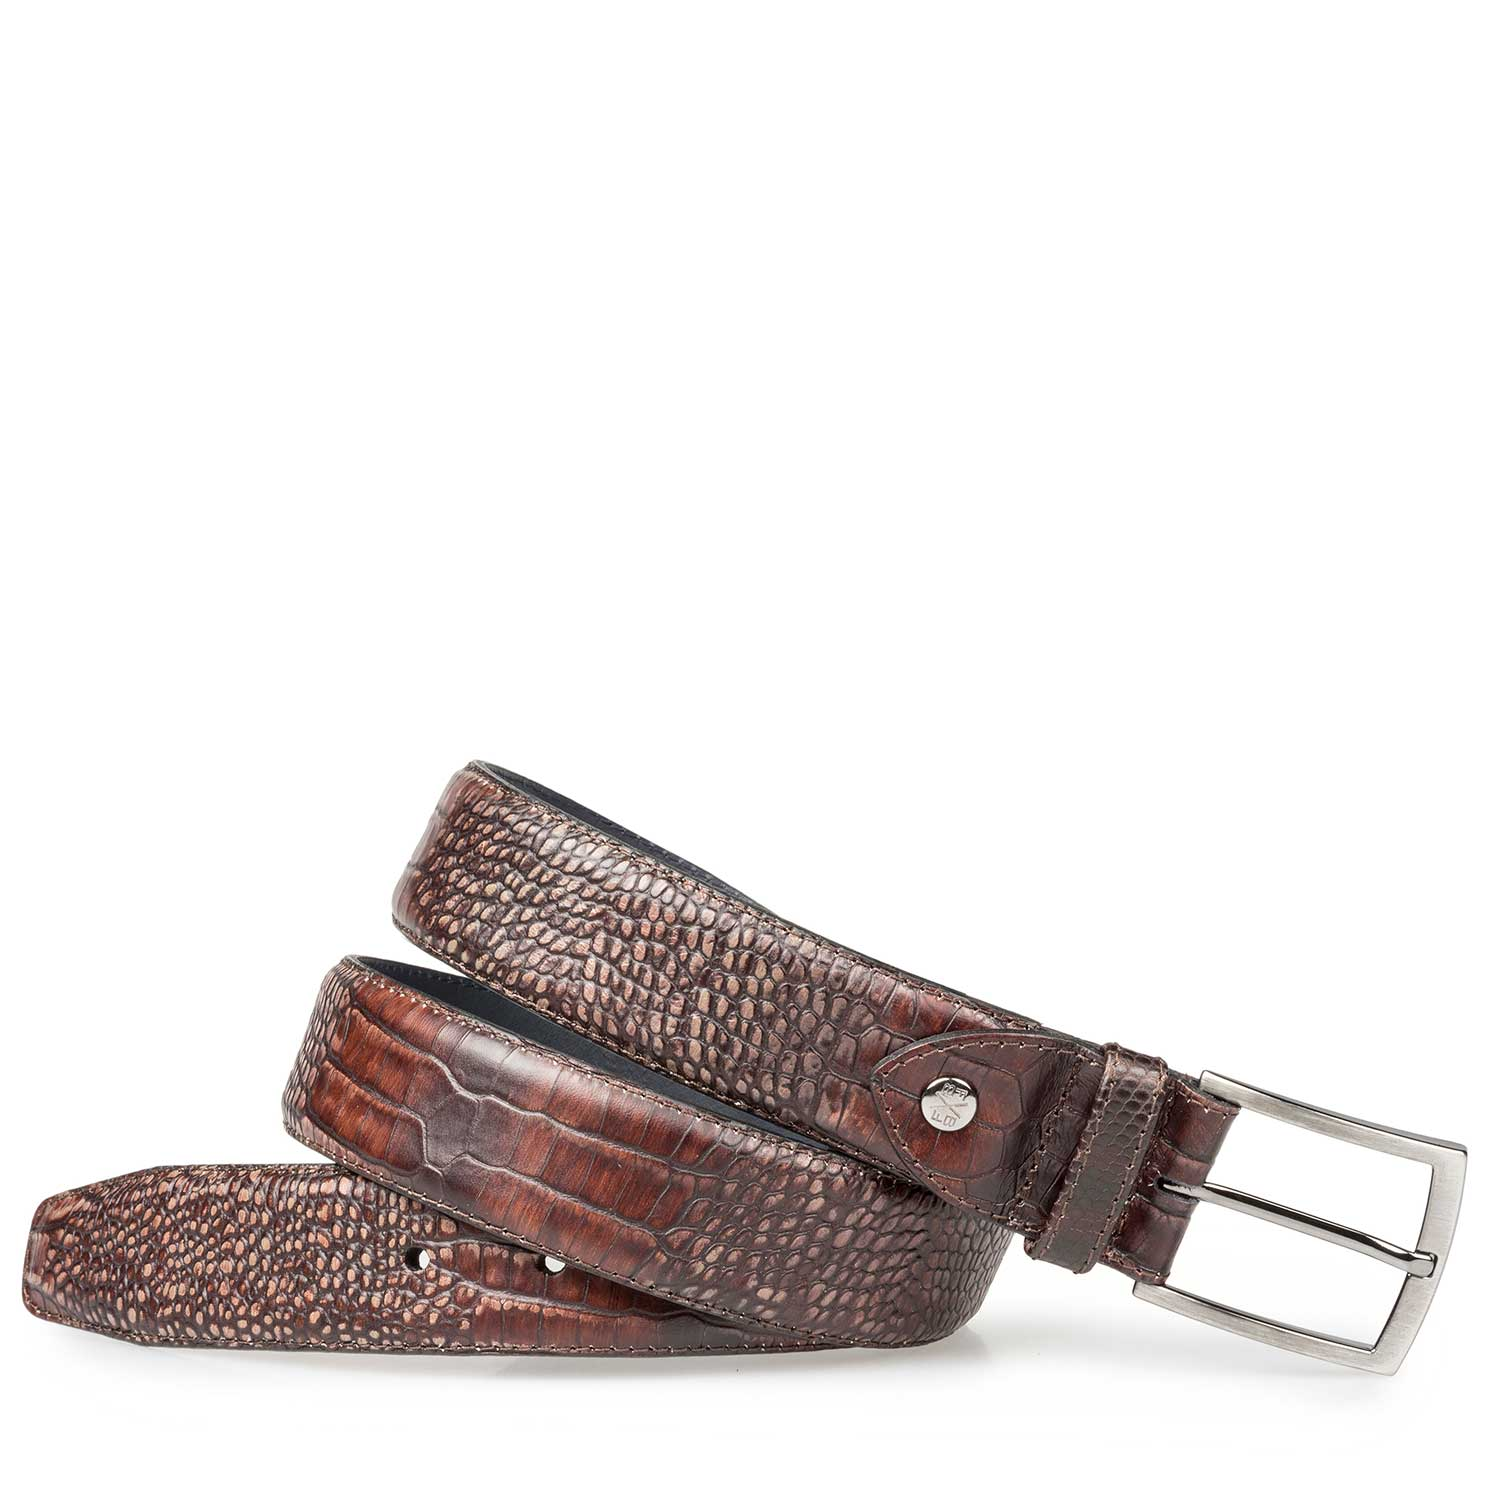 75190/48 - Dark brown belt with croco print